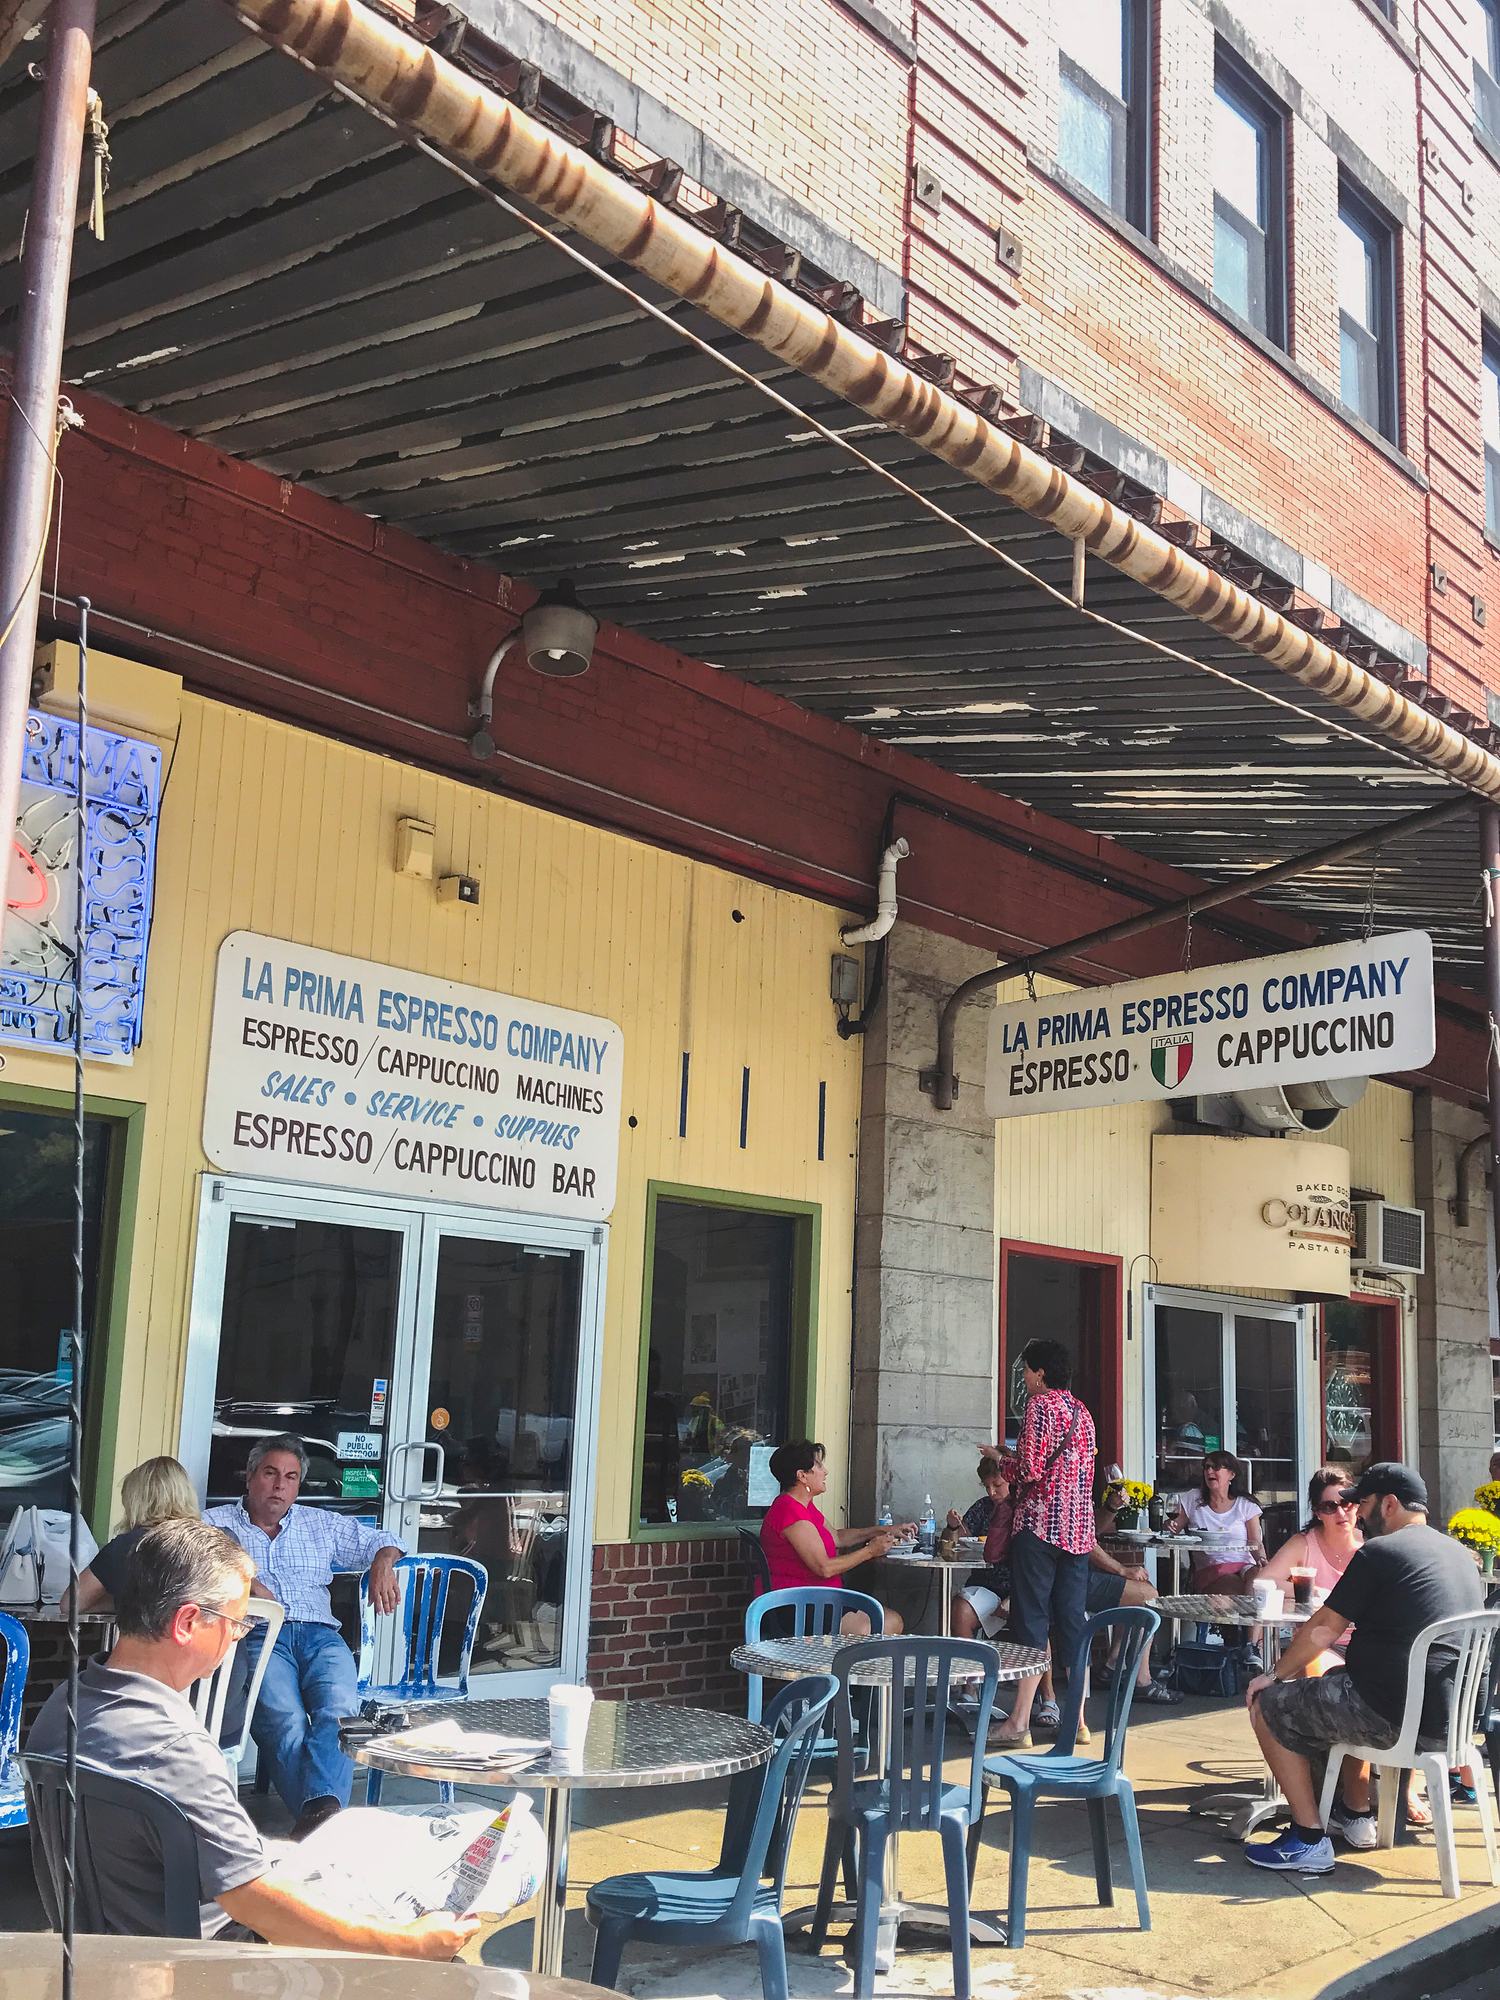 Where to Eat in Pittsburgh includes a stop at La Prima Espresso Company for coffee with locals.